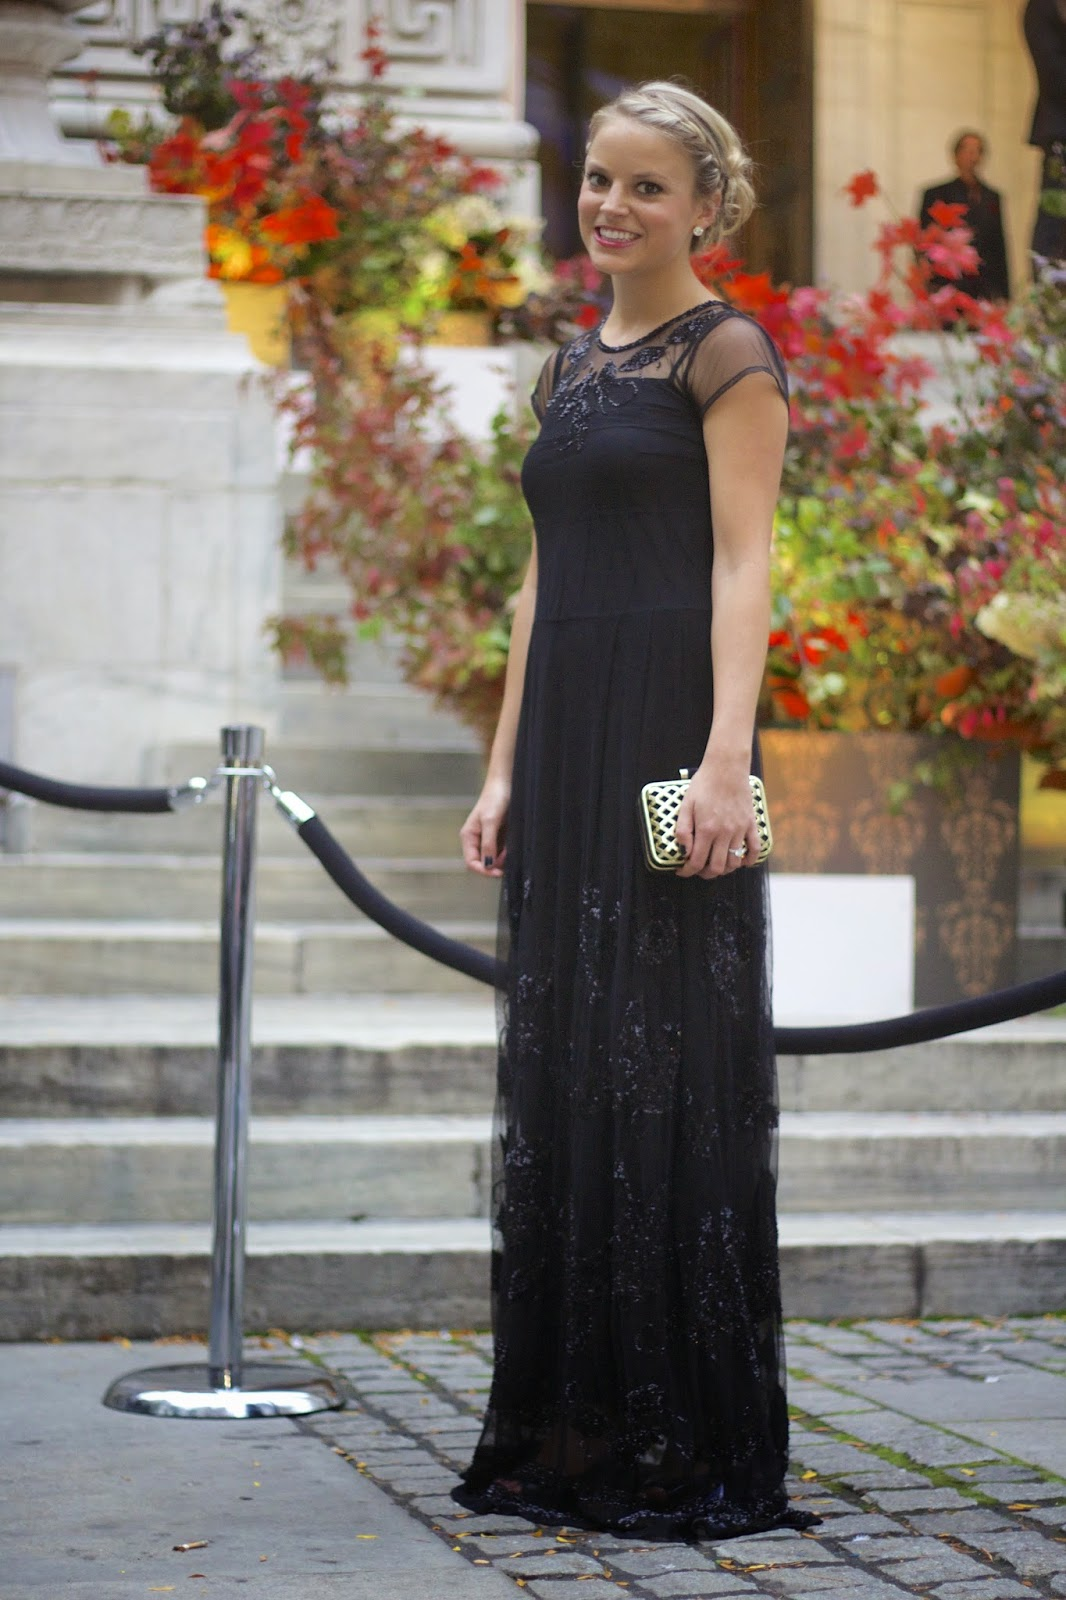 Sequined Maxi Dress What To Wear A Black Tie Wedding Attire